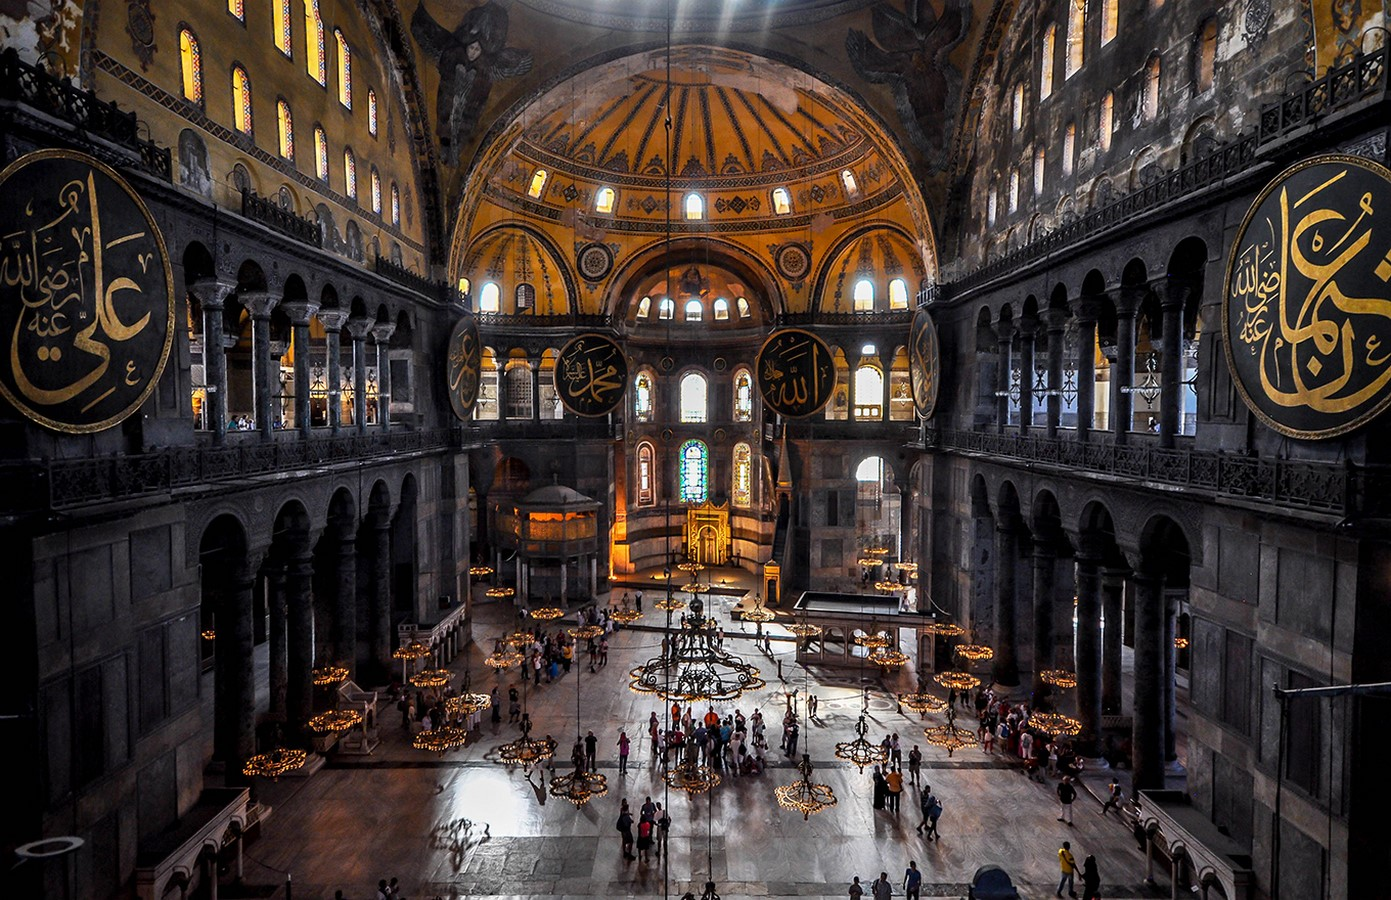 10 things you didn't know about Hagia Sophia - Sheet7